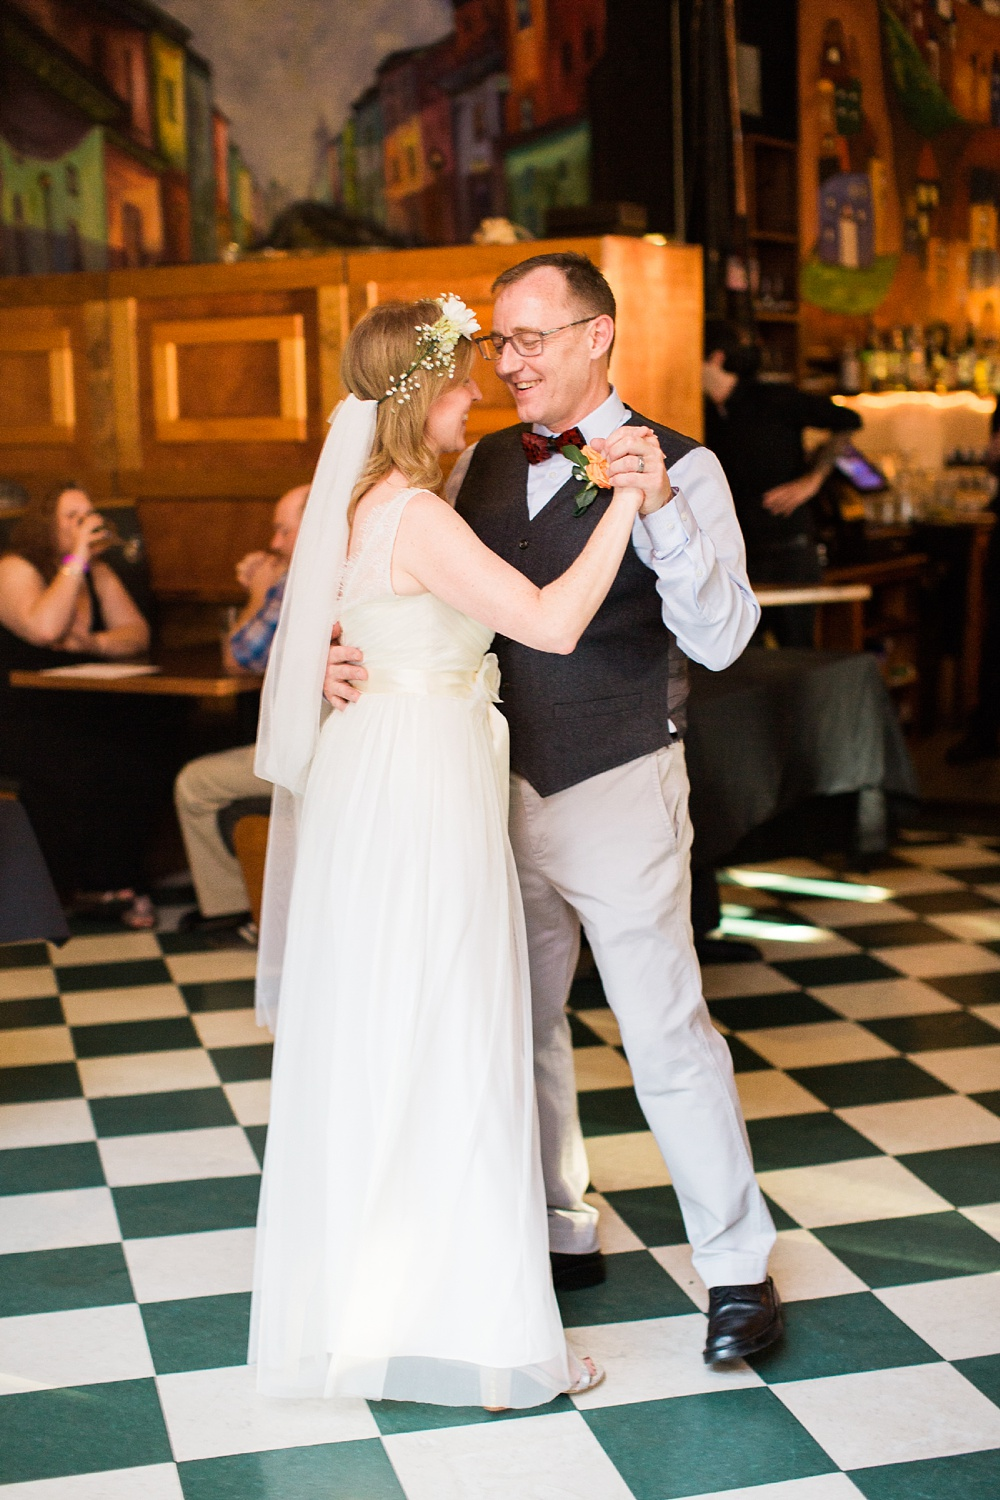 bride and groom's first dance at their humble pie reception